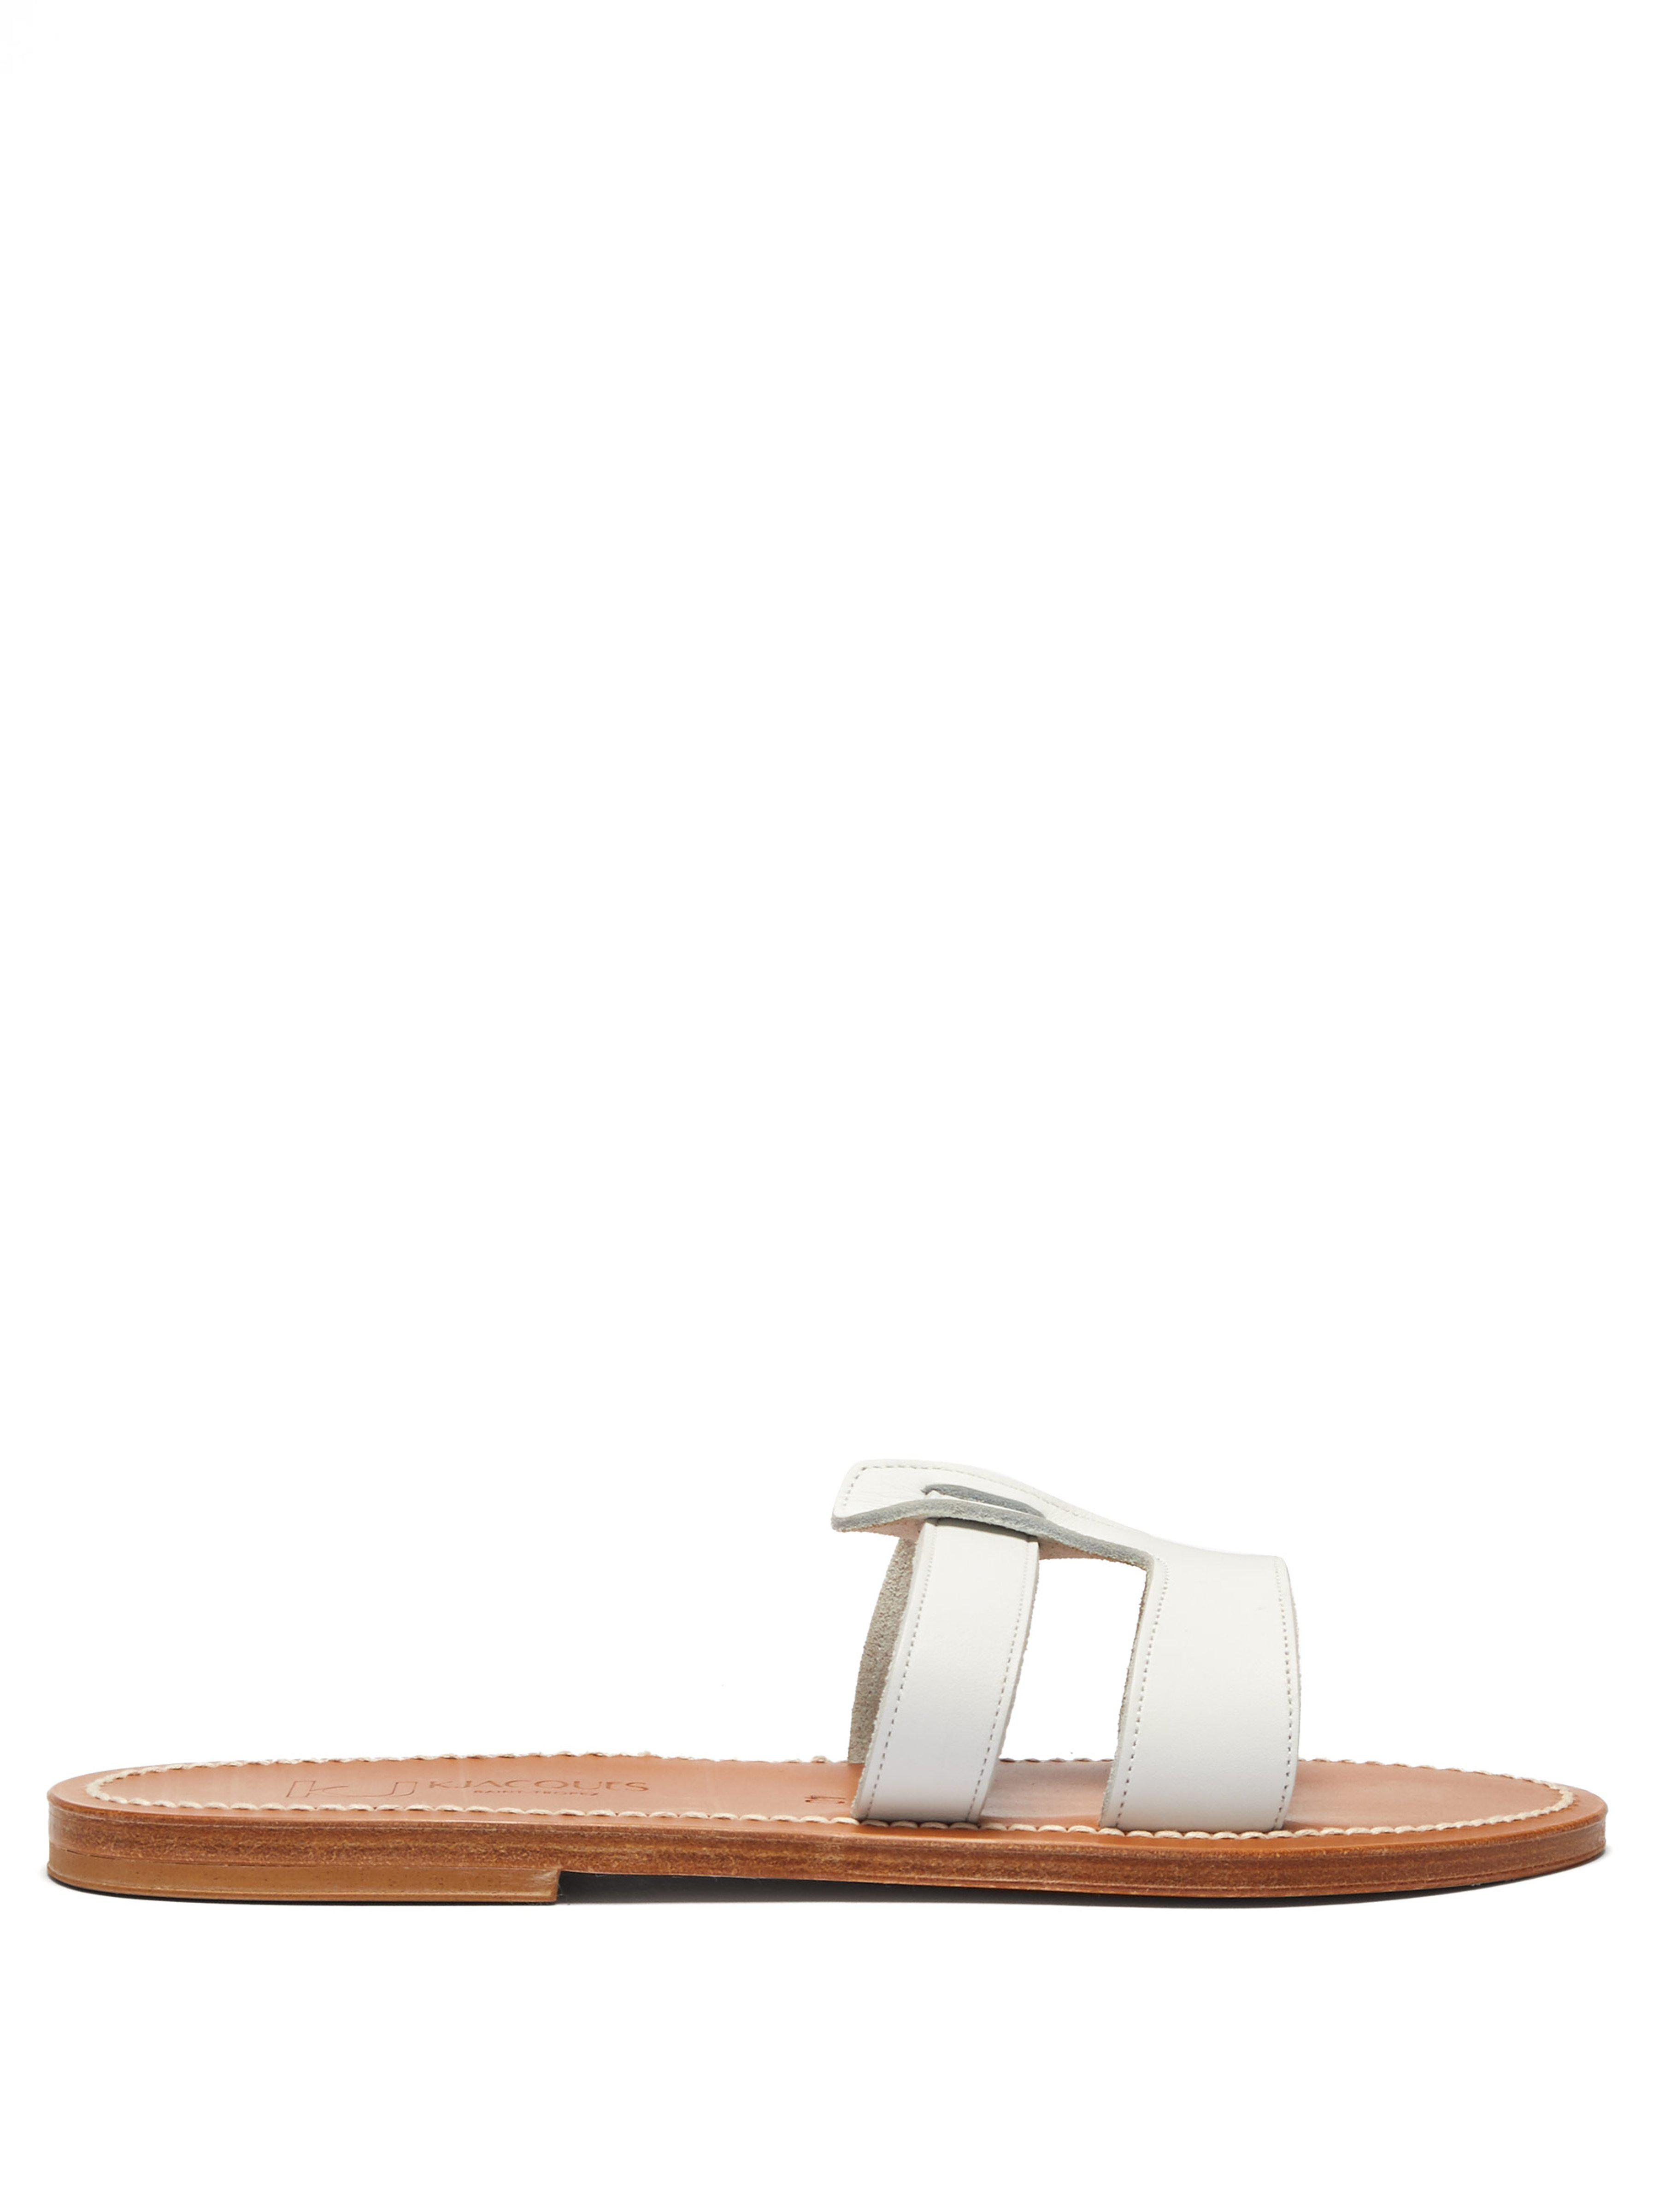 1b61048a0 K. Jacques Thanos Leather Slides in White - Lyst